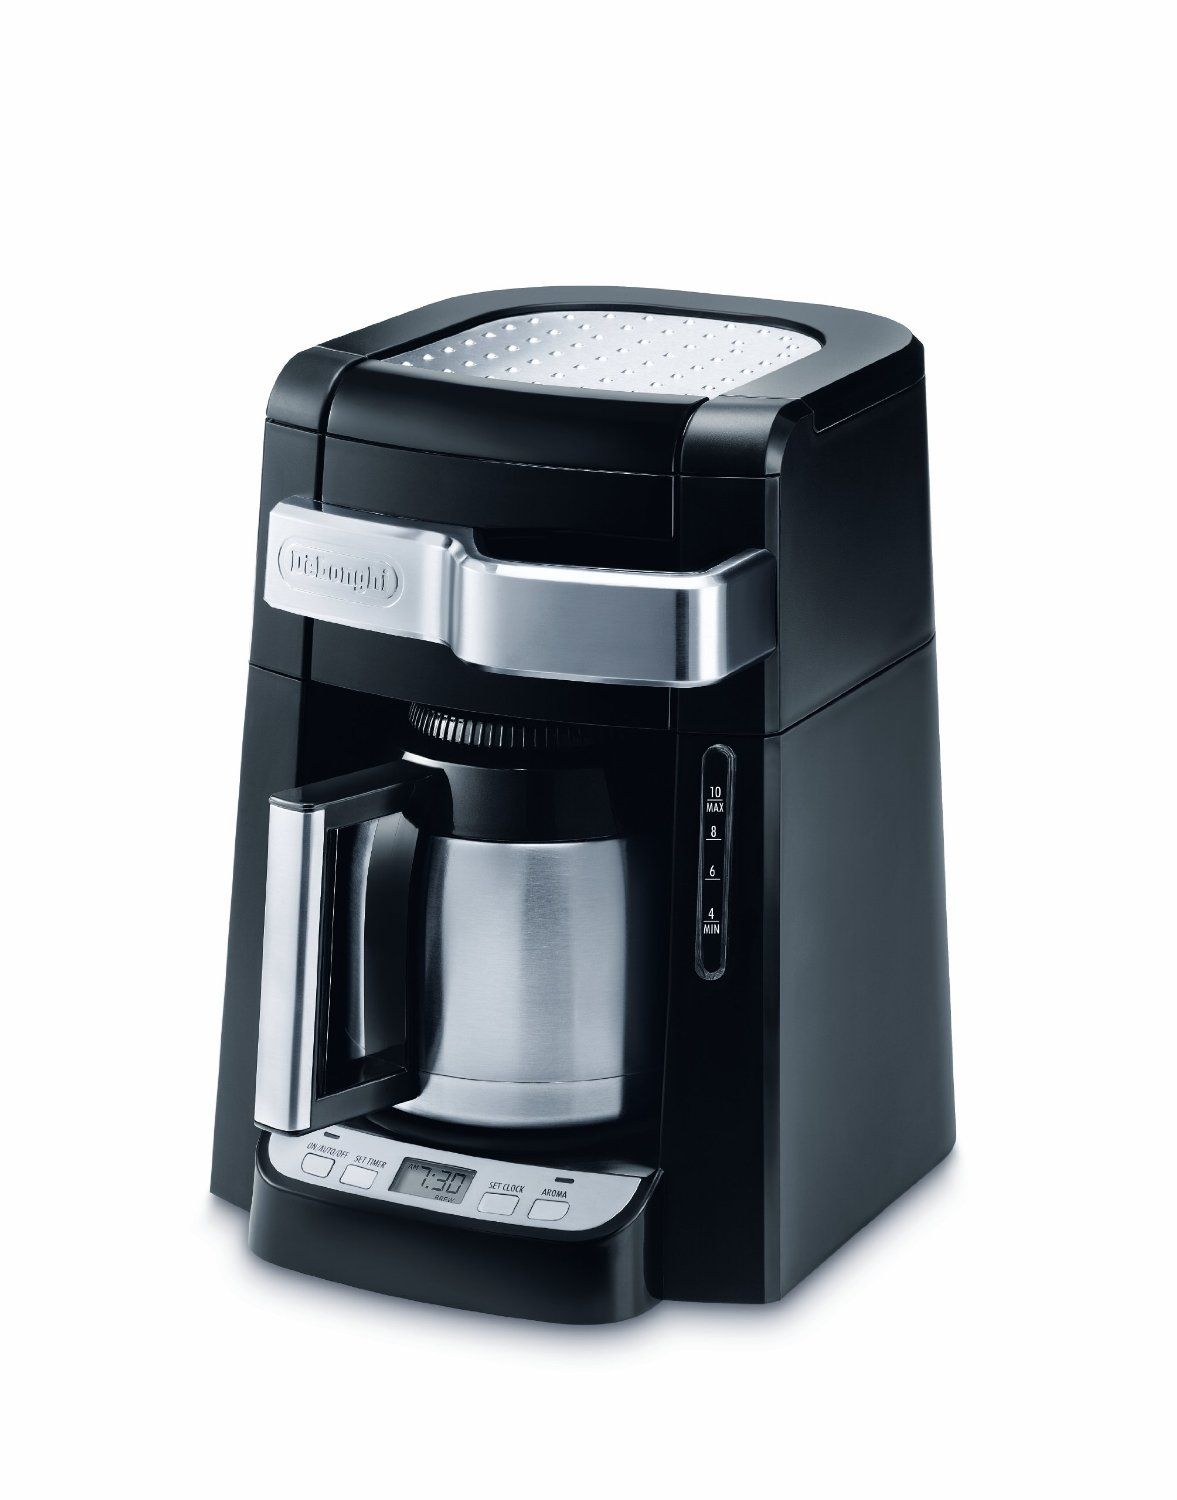 DeLonghi DCF2210TTC 10Cup Thermal Carafe Drip Coffee